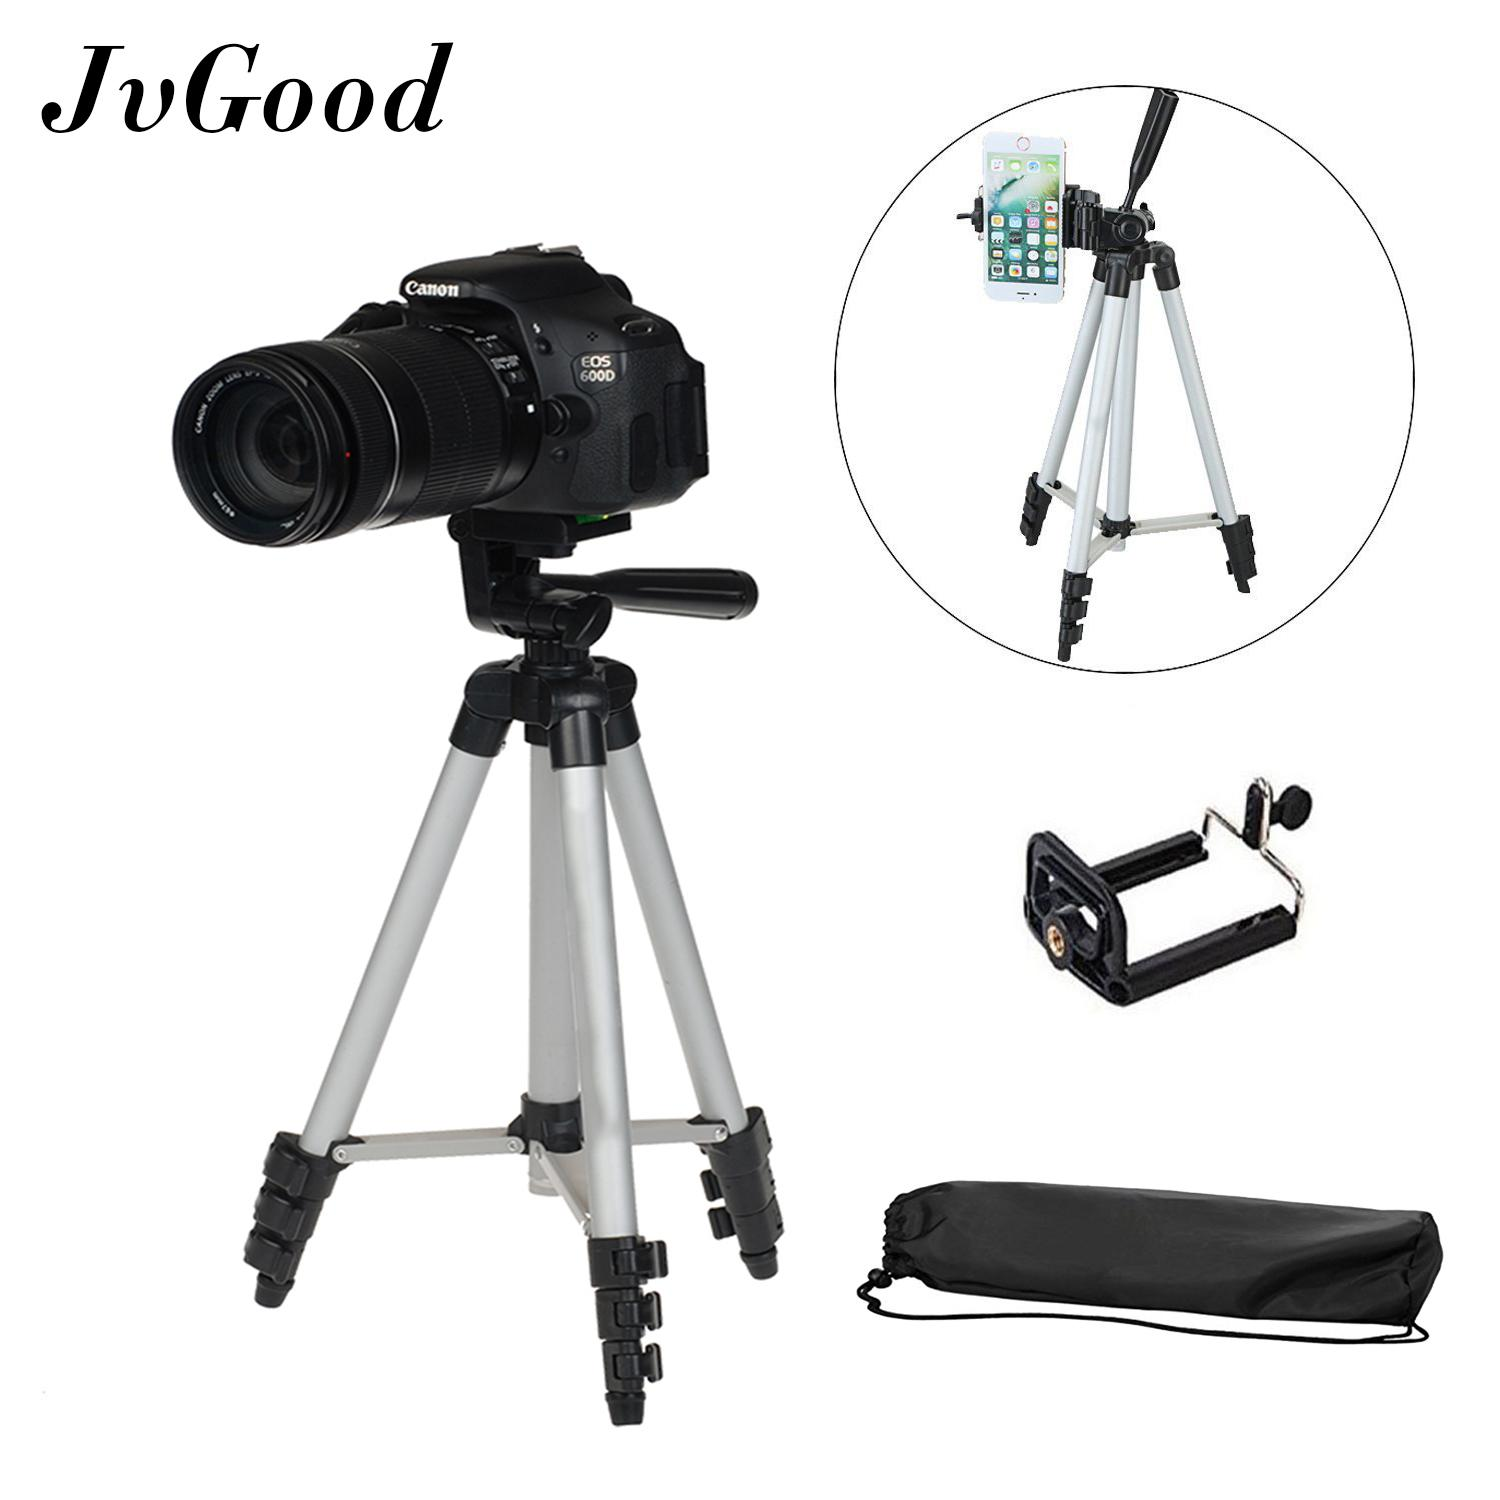 JvGood Camera Tripods with Bag Rotatable Retractable Tripods Stand Travel Tripods Mount  WT-3110A Compact Lightweight Aluminum Flexible Phone/Camera Tripods with Mobile Phone Holder Telescoping Camera DSLR Stand Tripods